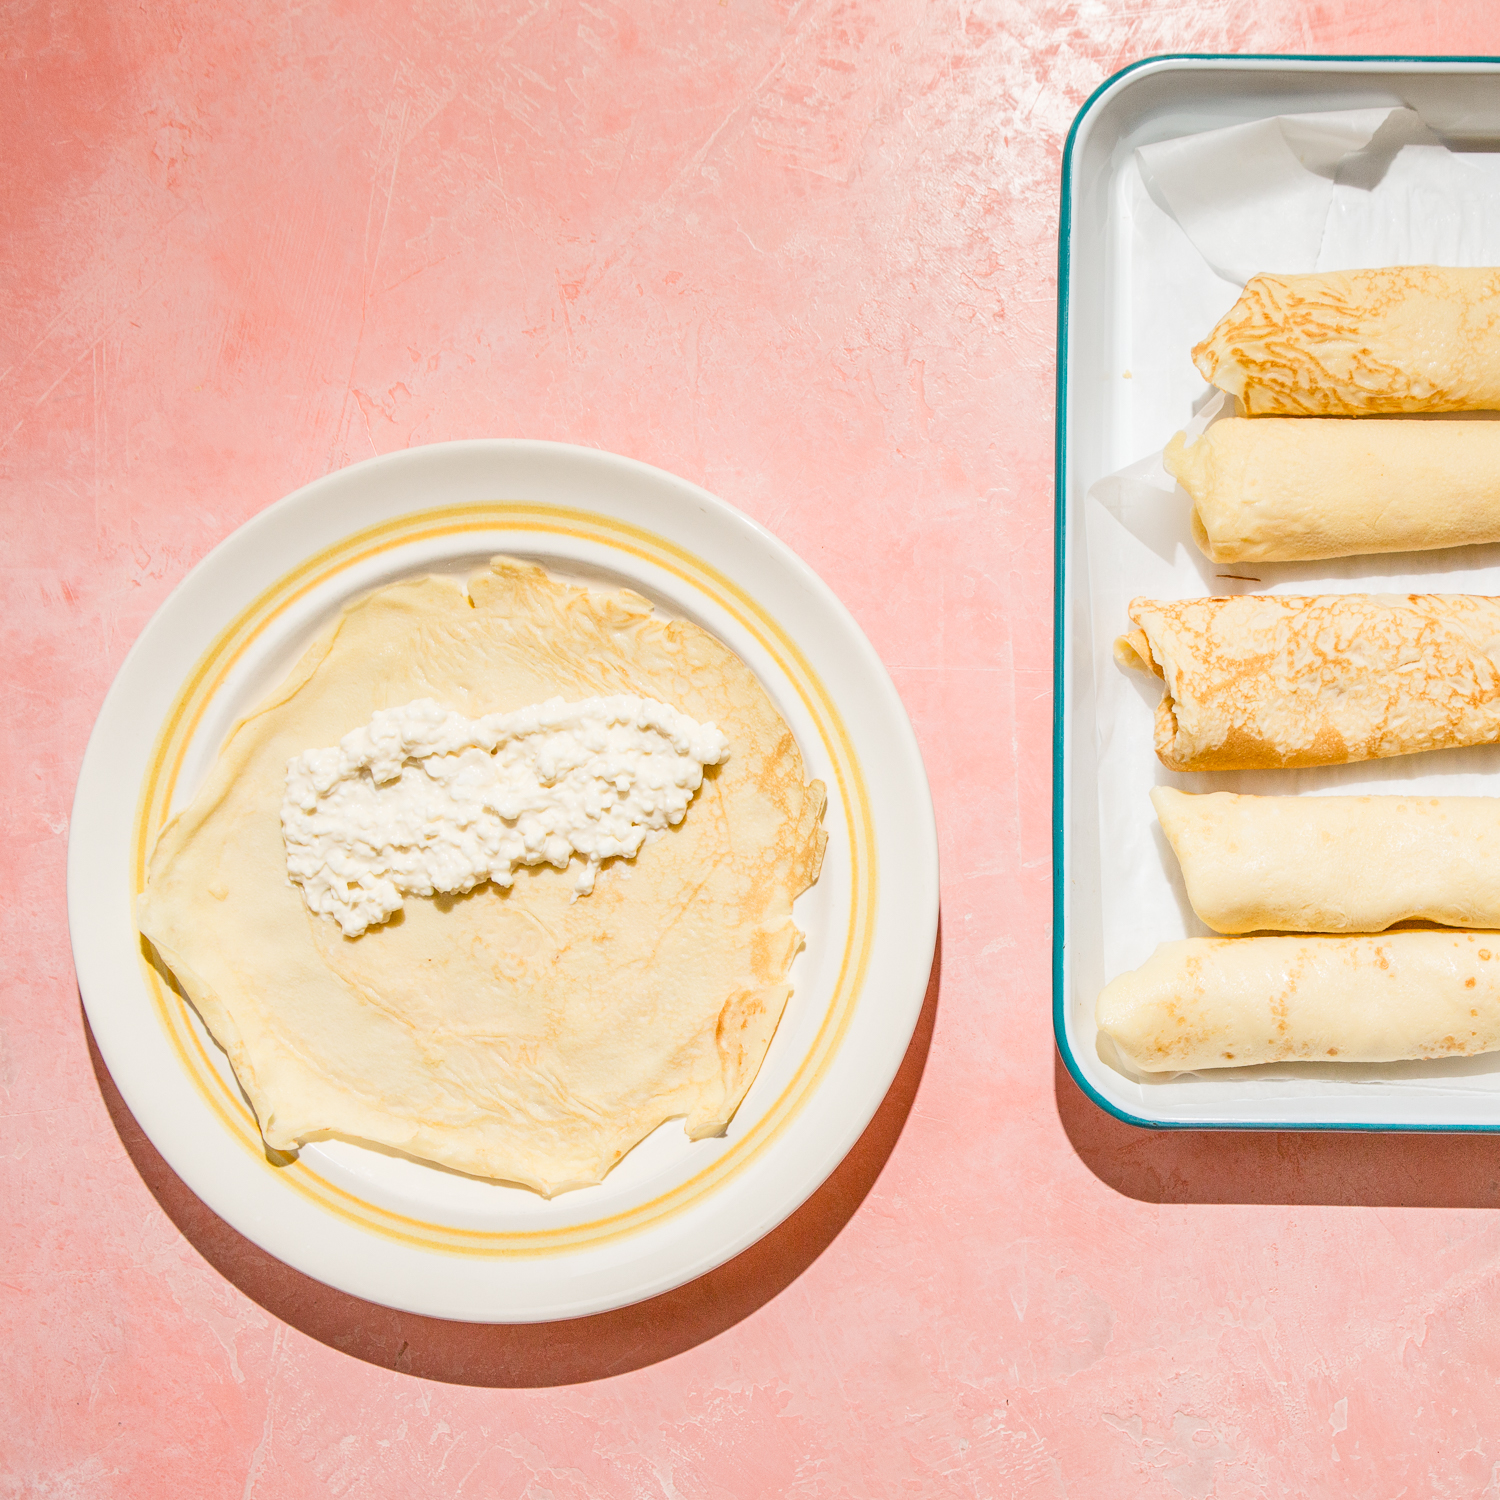 How to Roll a Cheese Blintz